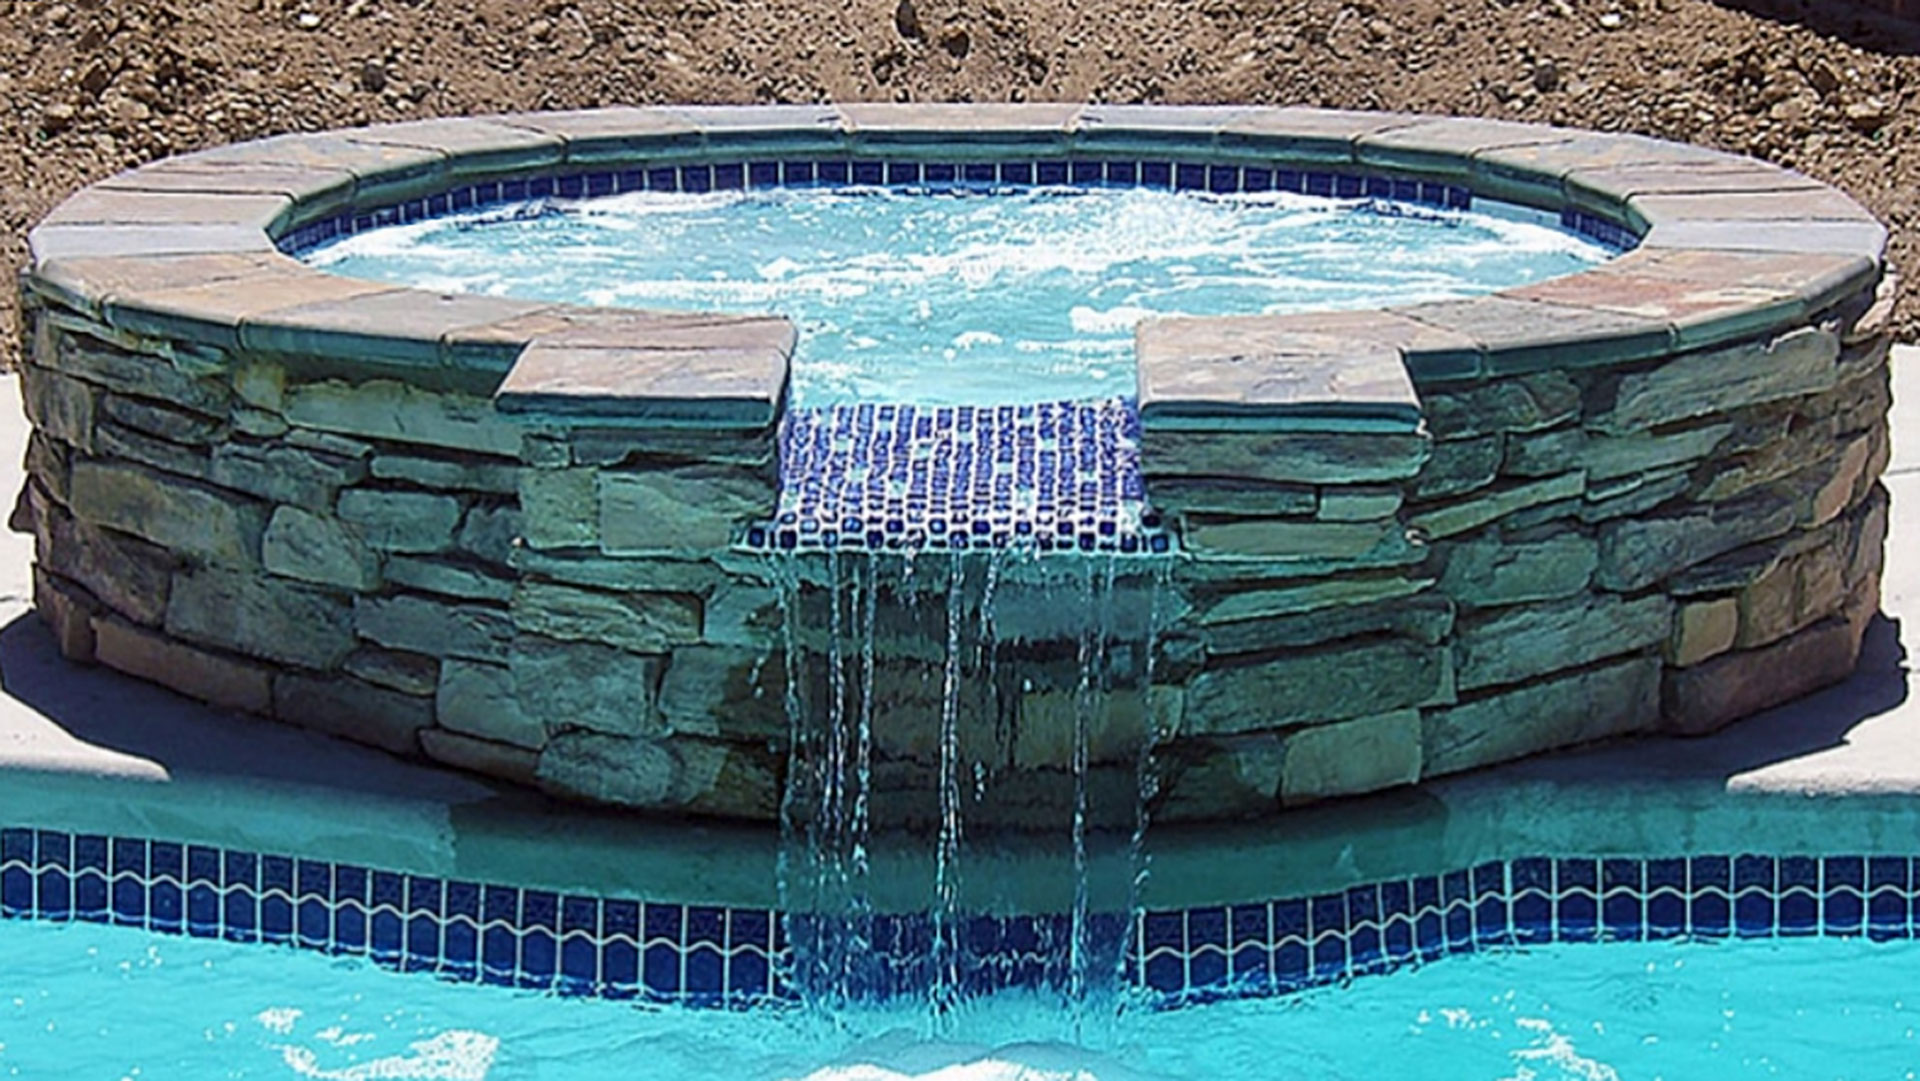 Alaglas Pools Fiberglass Aruba Spa in white with spillover